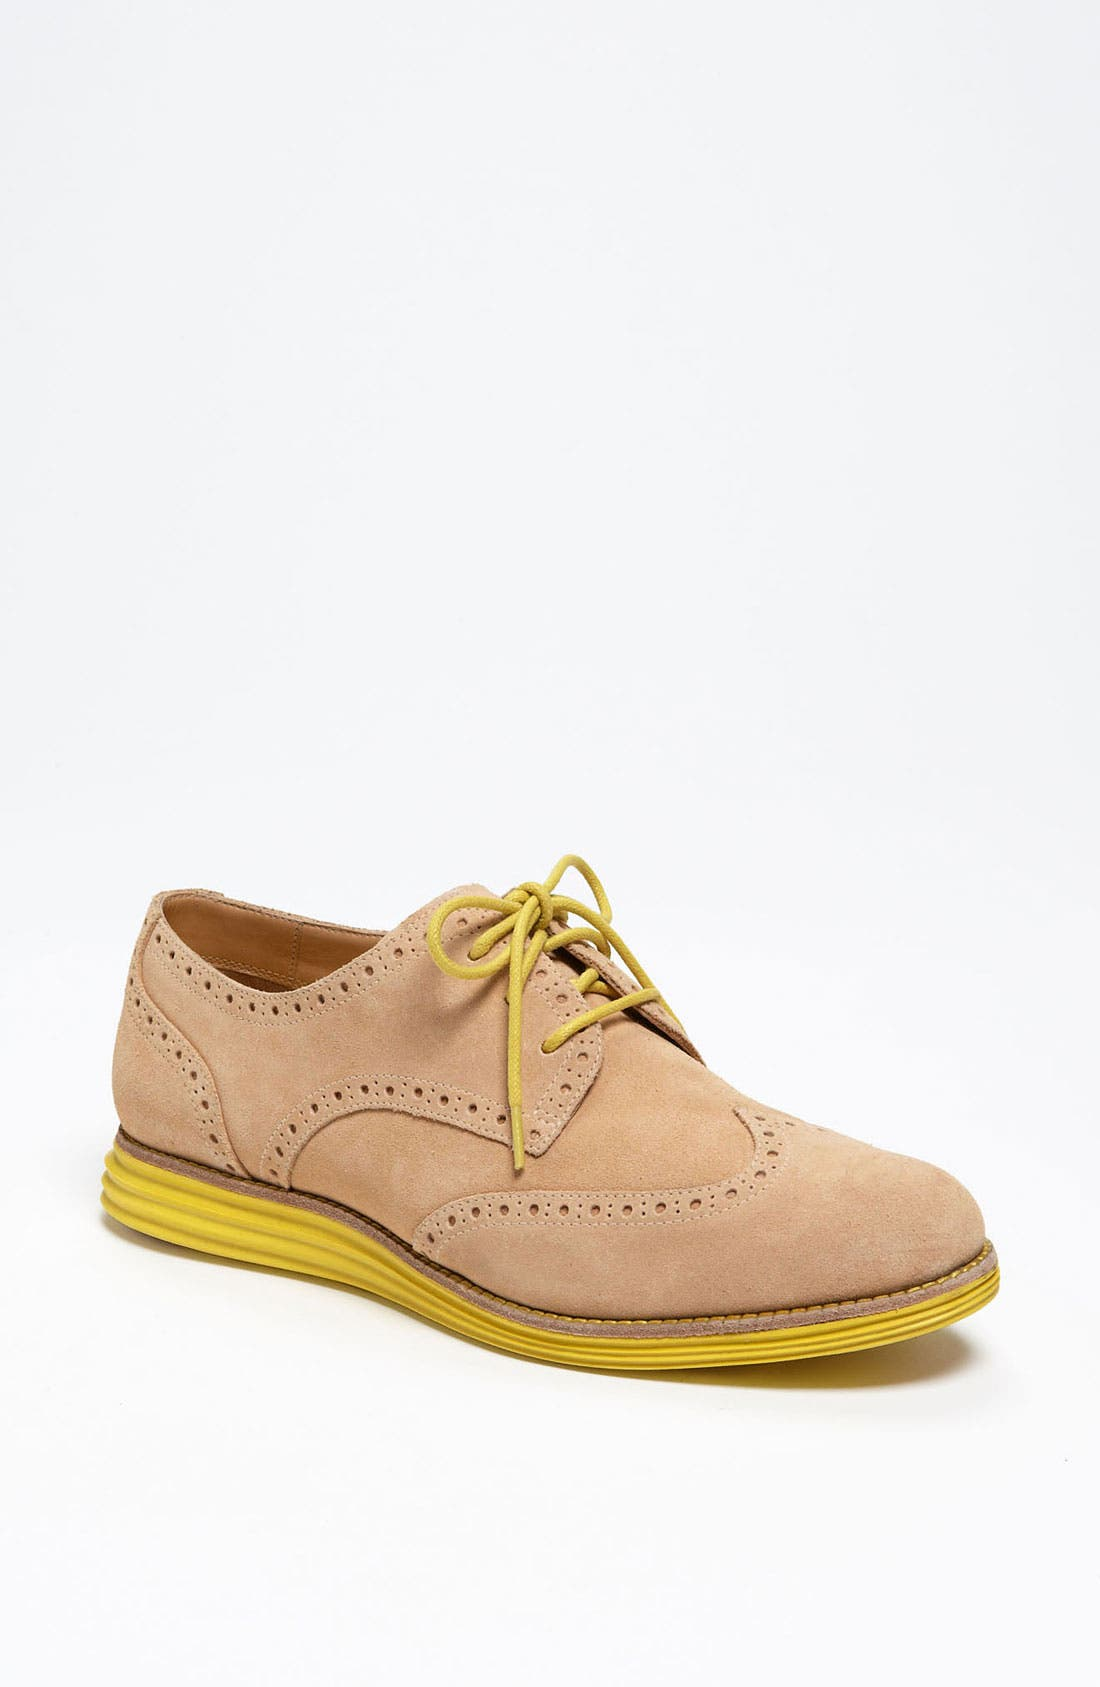 Alternate Image 1 Selected - Cole Haan 'LunarGrand' Wingtip Oxford (Women)